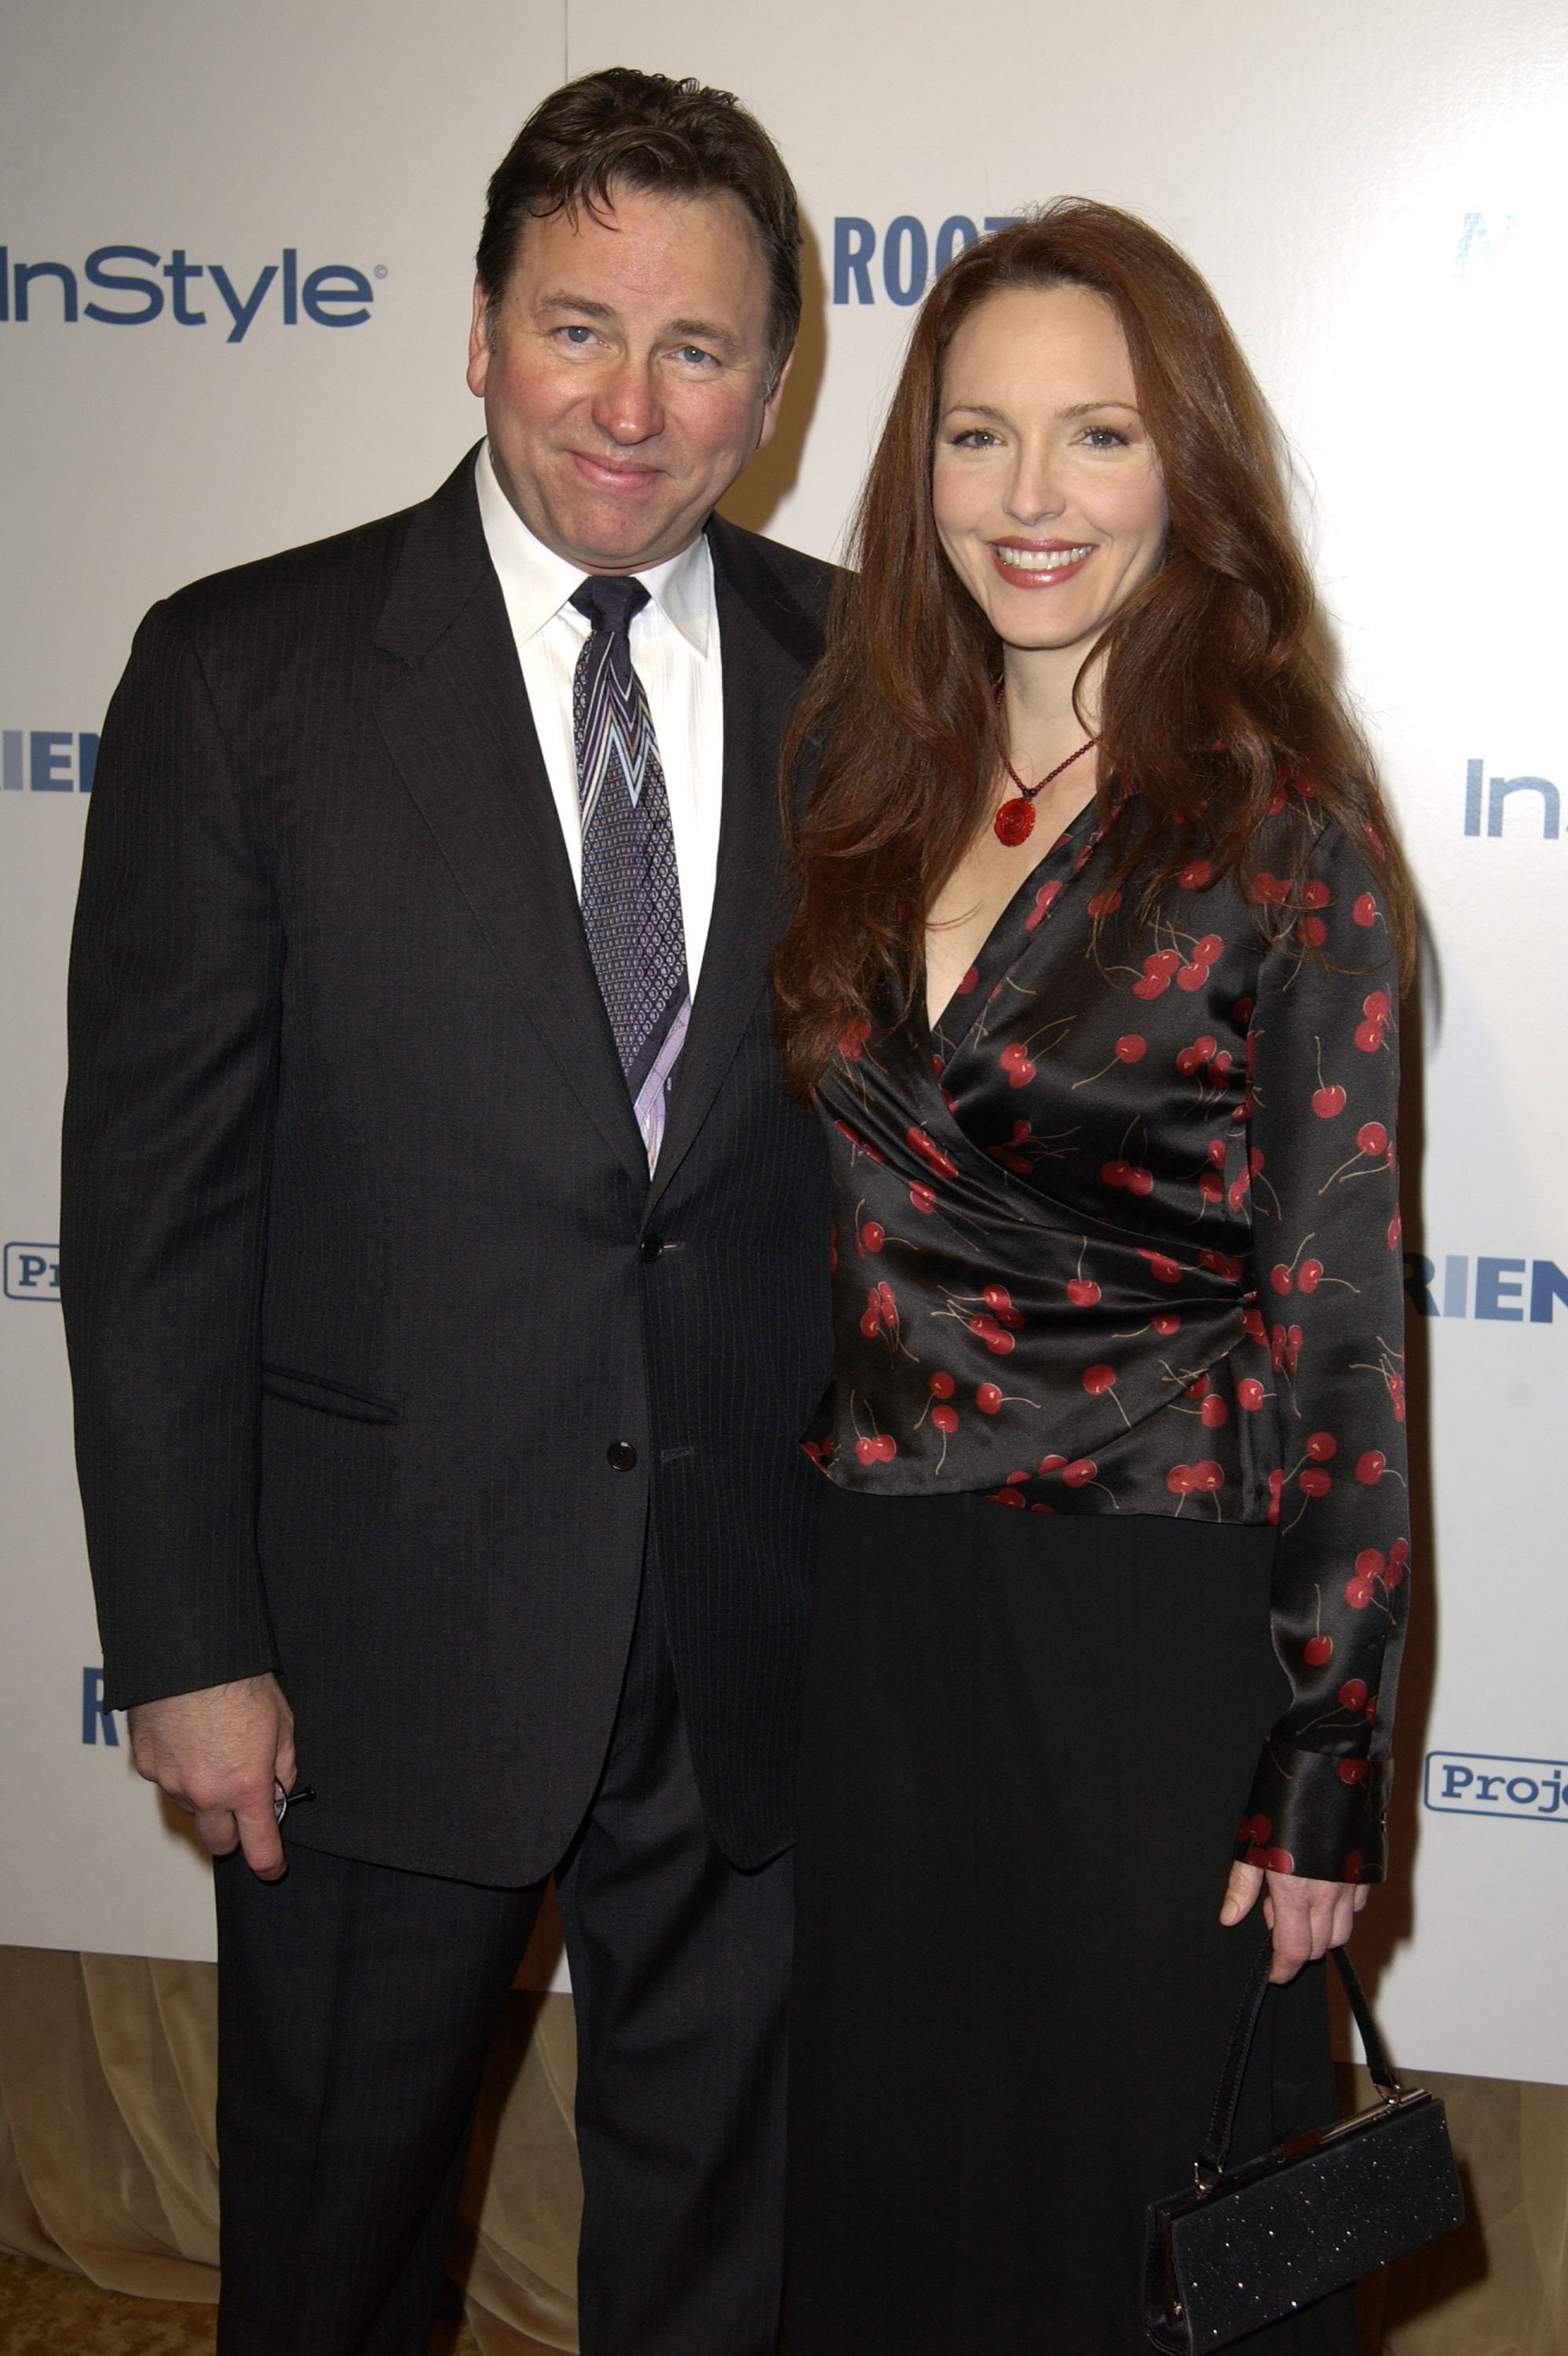 john ritter and wife amy yasbeck